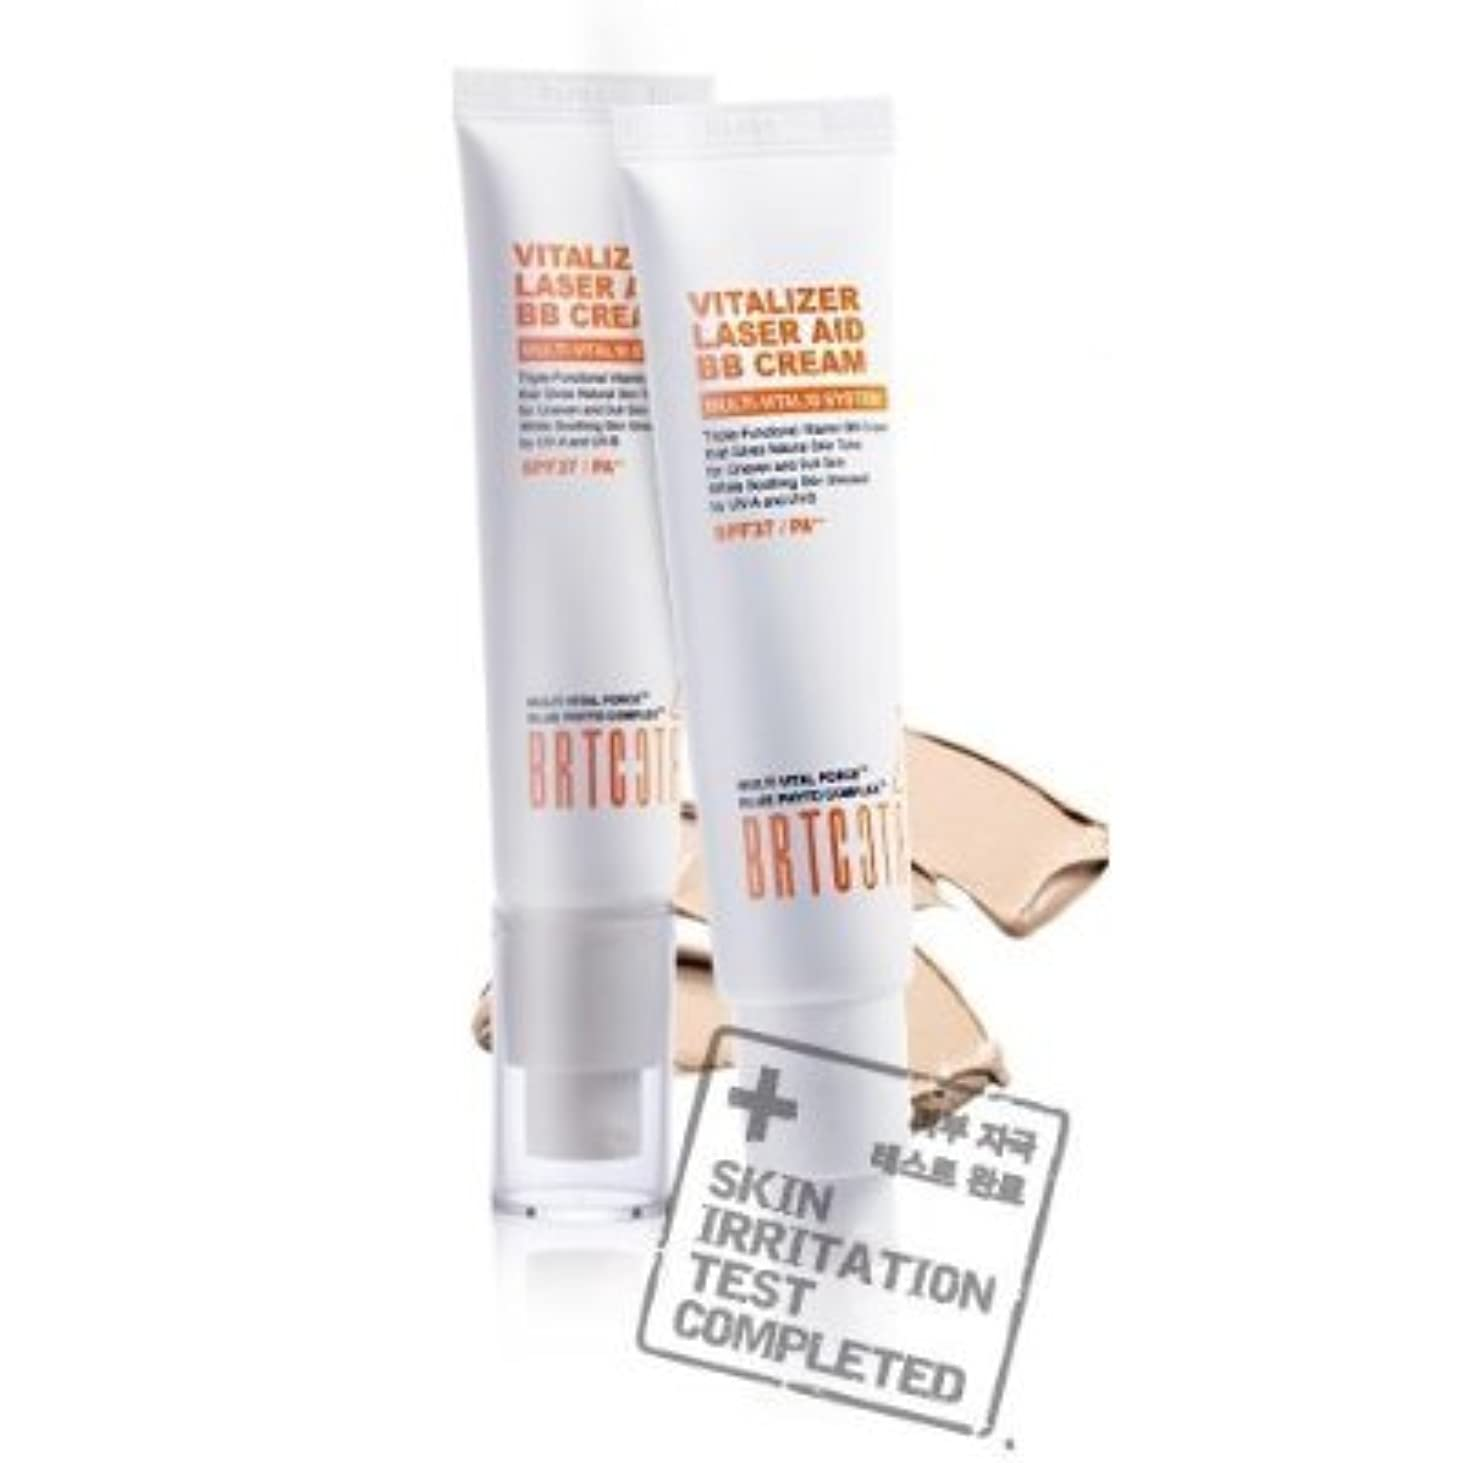 フラッシュのように素早く罪人名義でKOREAN COSMETICS, BRTC, Vitalizer Laser Aid BB Cream 35g (whitening, anti-wrinkle, UV protection SPF37/PA + +,...